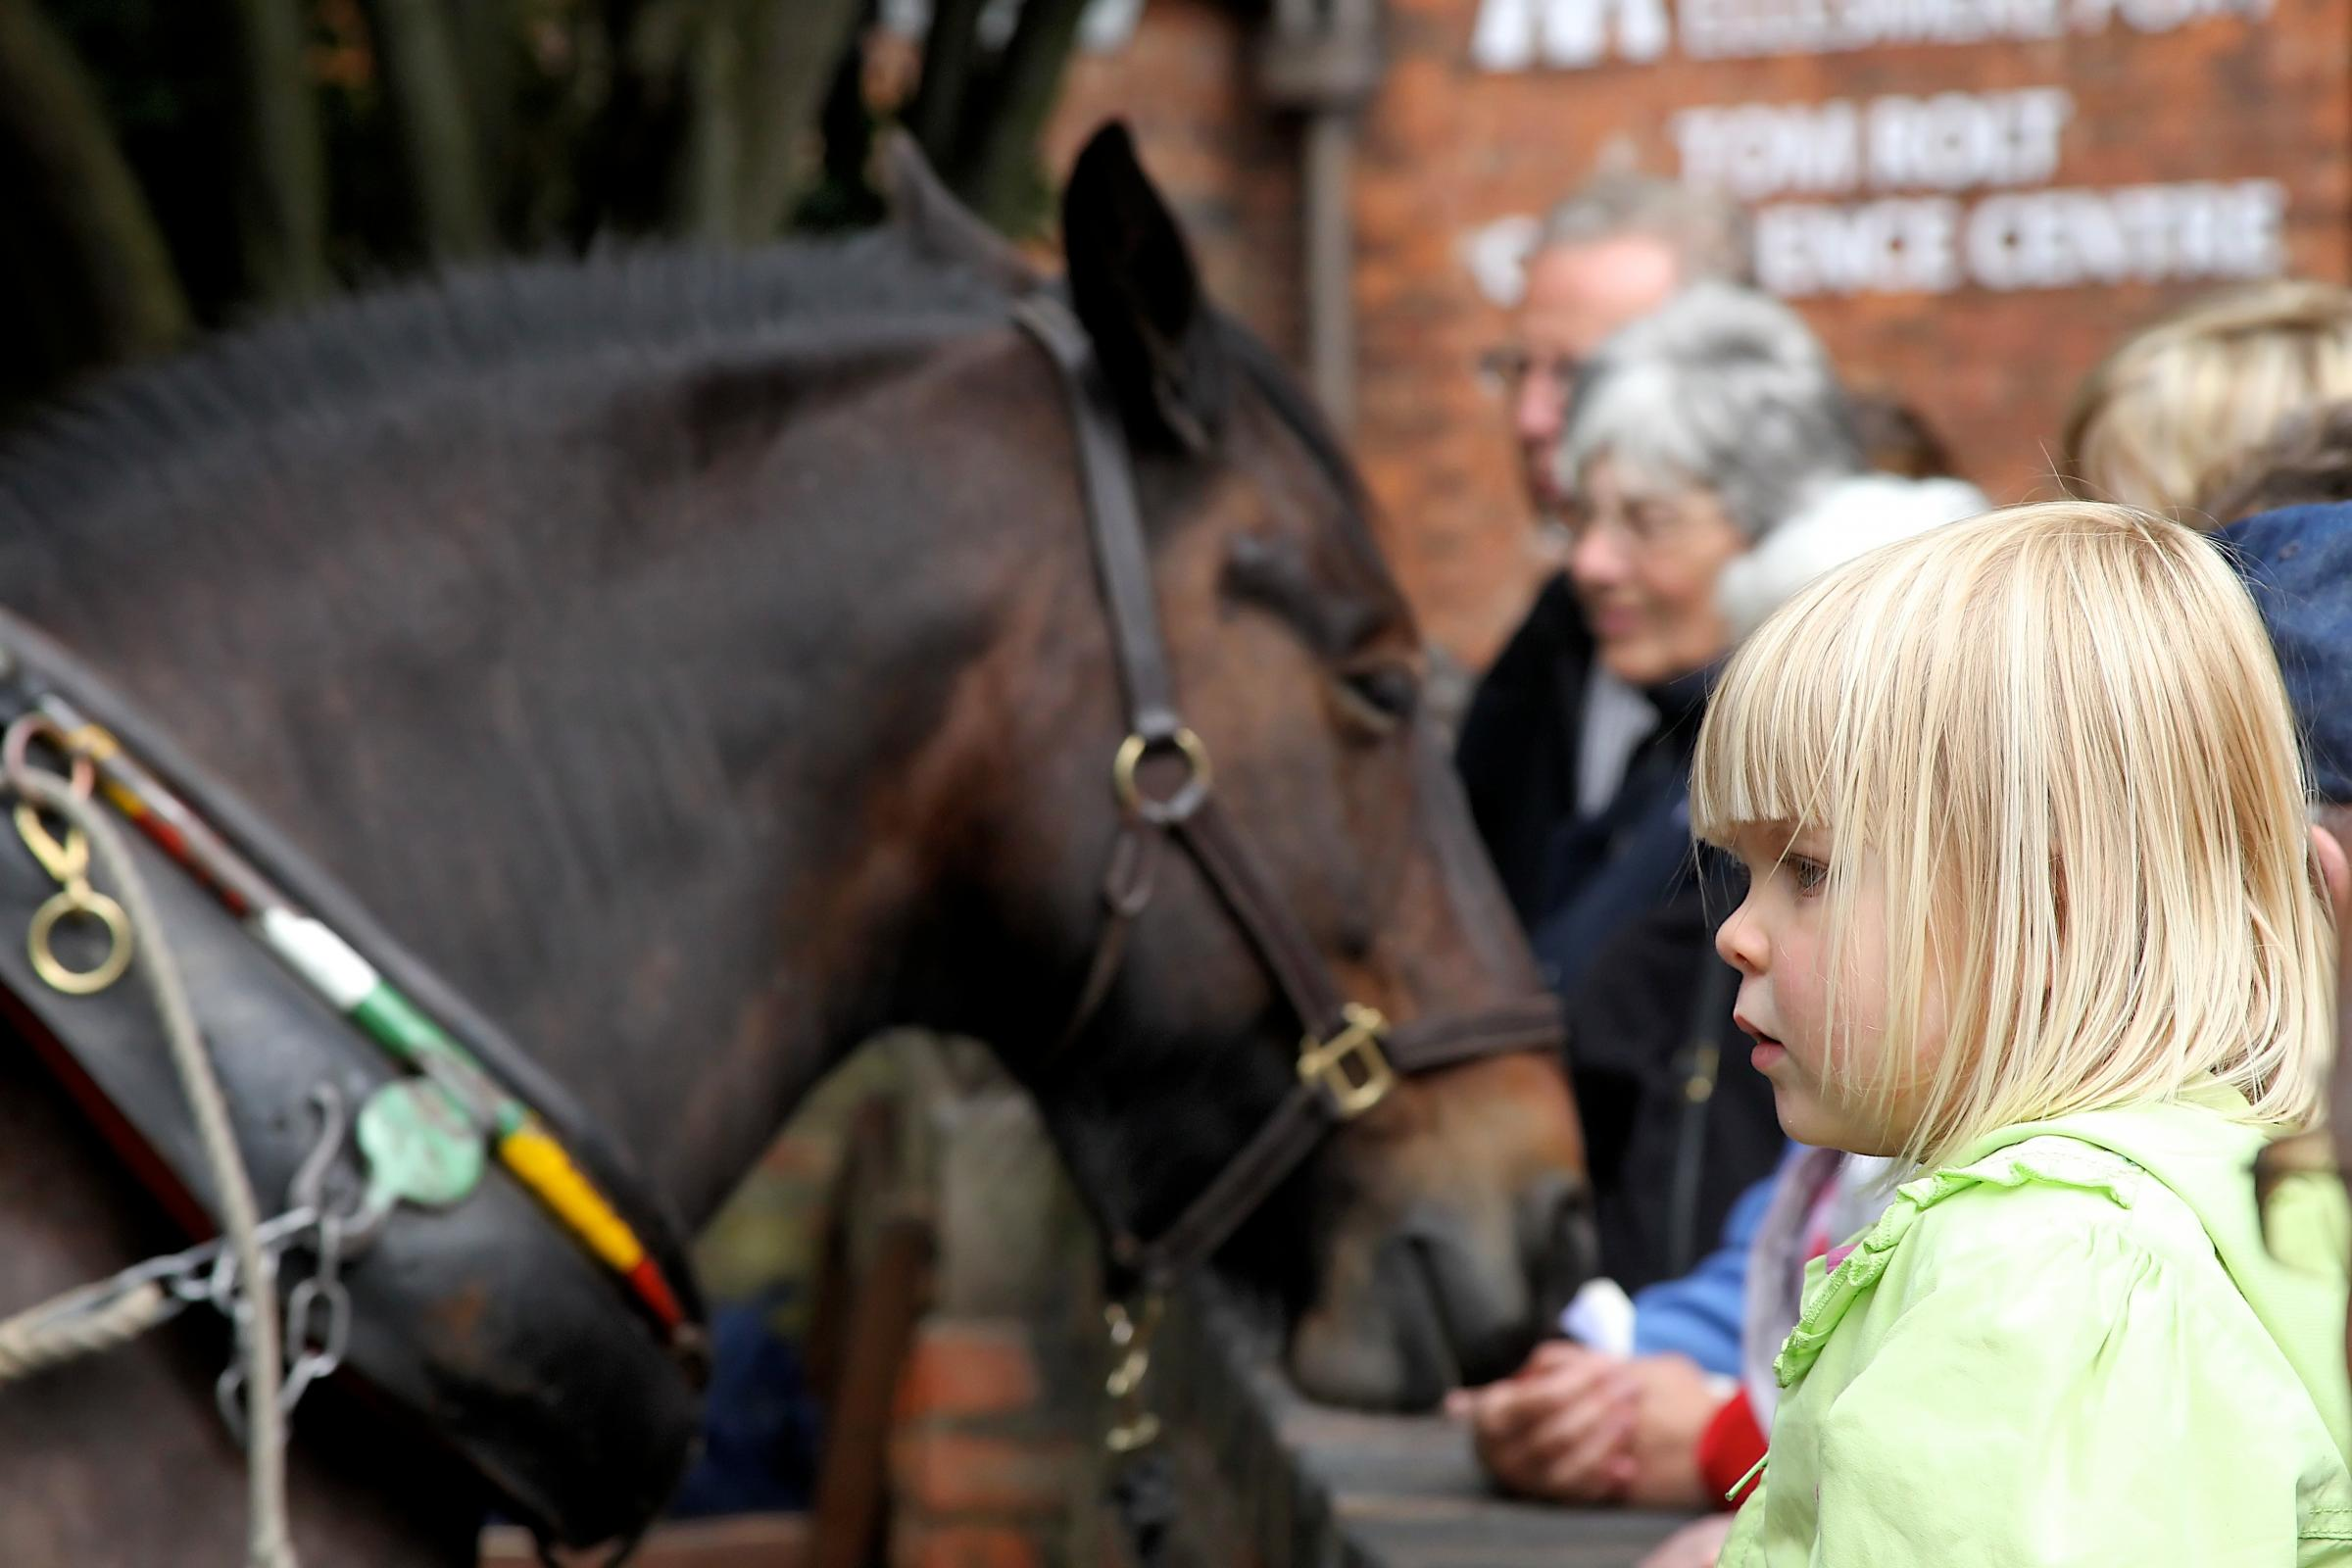 Popular 'Horses at Work' event returns to the National Waterways Museum in Ellesmere Port